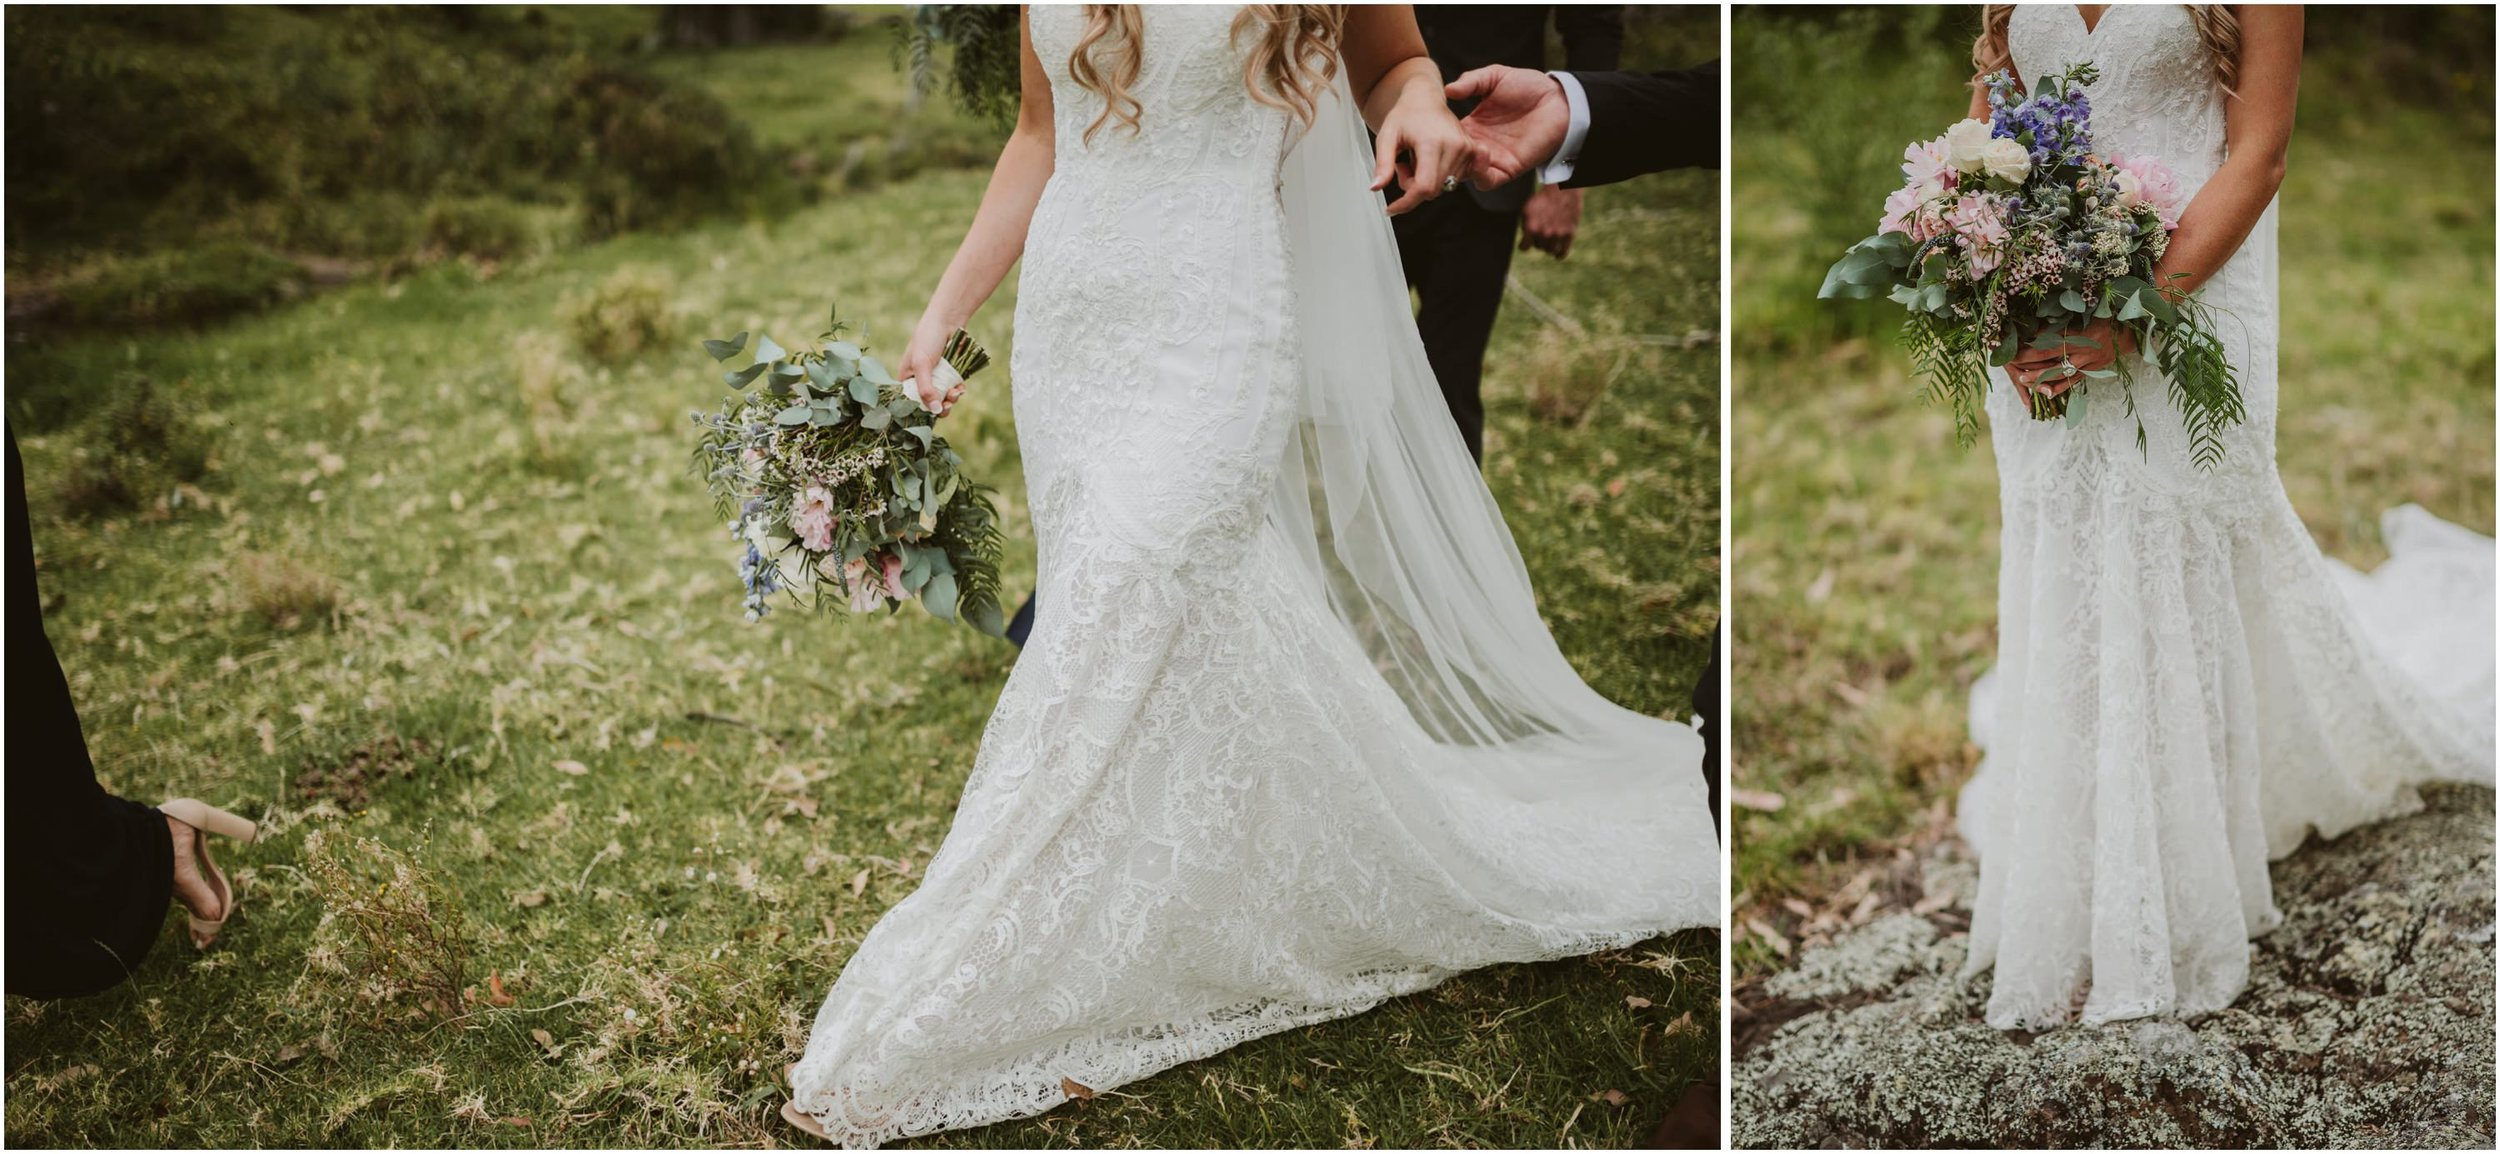 Bushbank Southern Highlands South Coast Wedding Jack Gilchrist Photography Sydney_0319.jpg